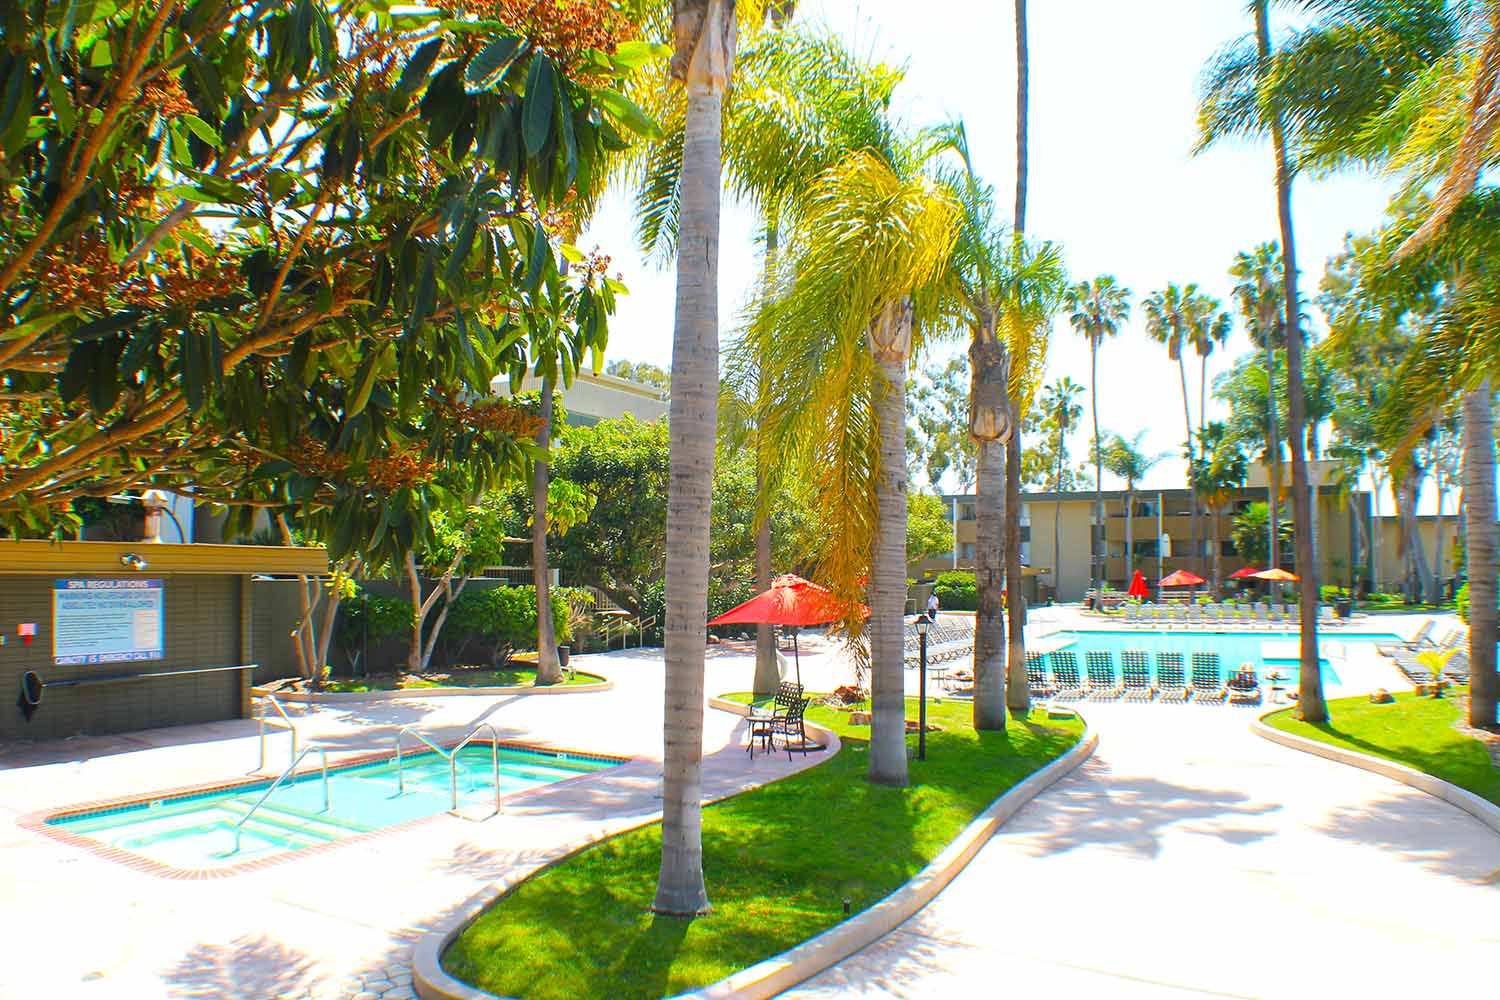 San Diego_Bay Pointe Apartments_Pool_02